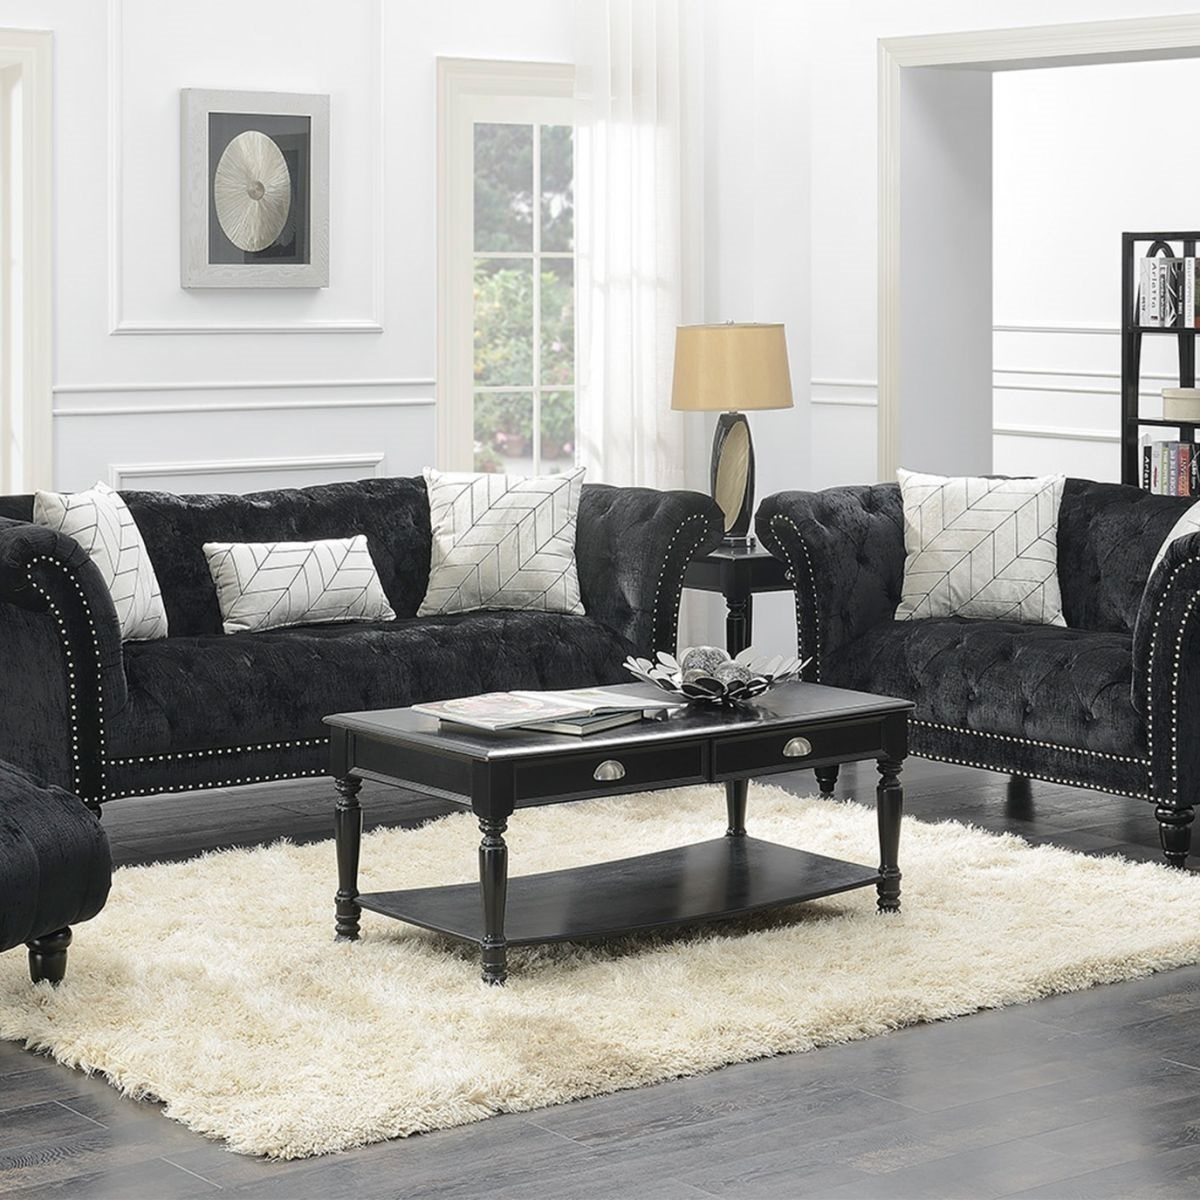 twain black sofa loveseat badcock more end tables ture table front window crystal bedside lamps small tall coffee white wood set unfinished furniture san bernardino corner